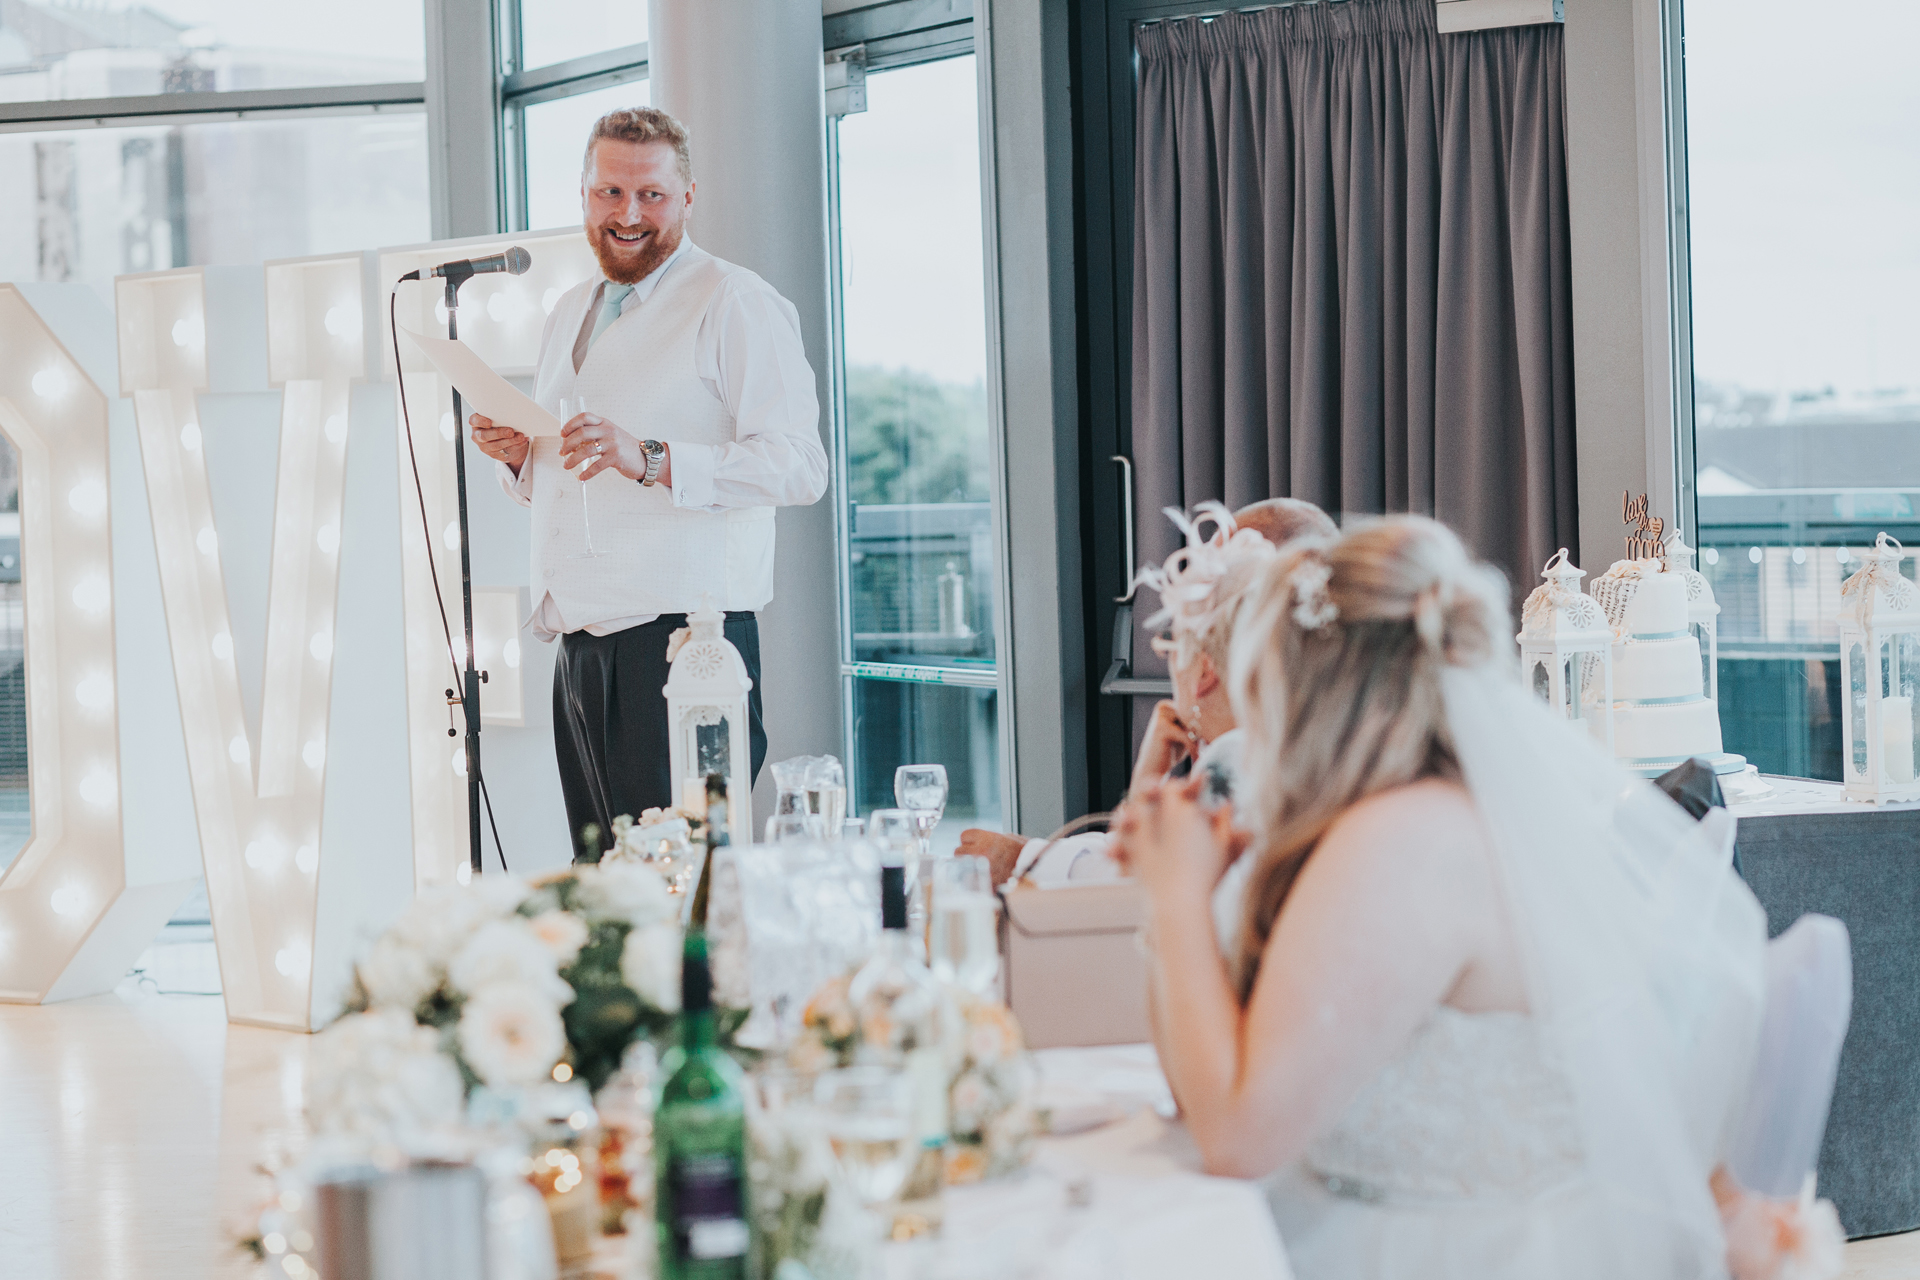 Groom looks on at his bride while giving his speech.